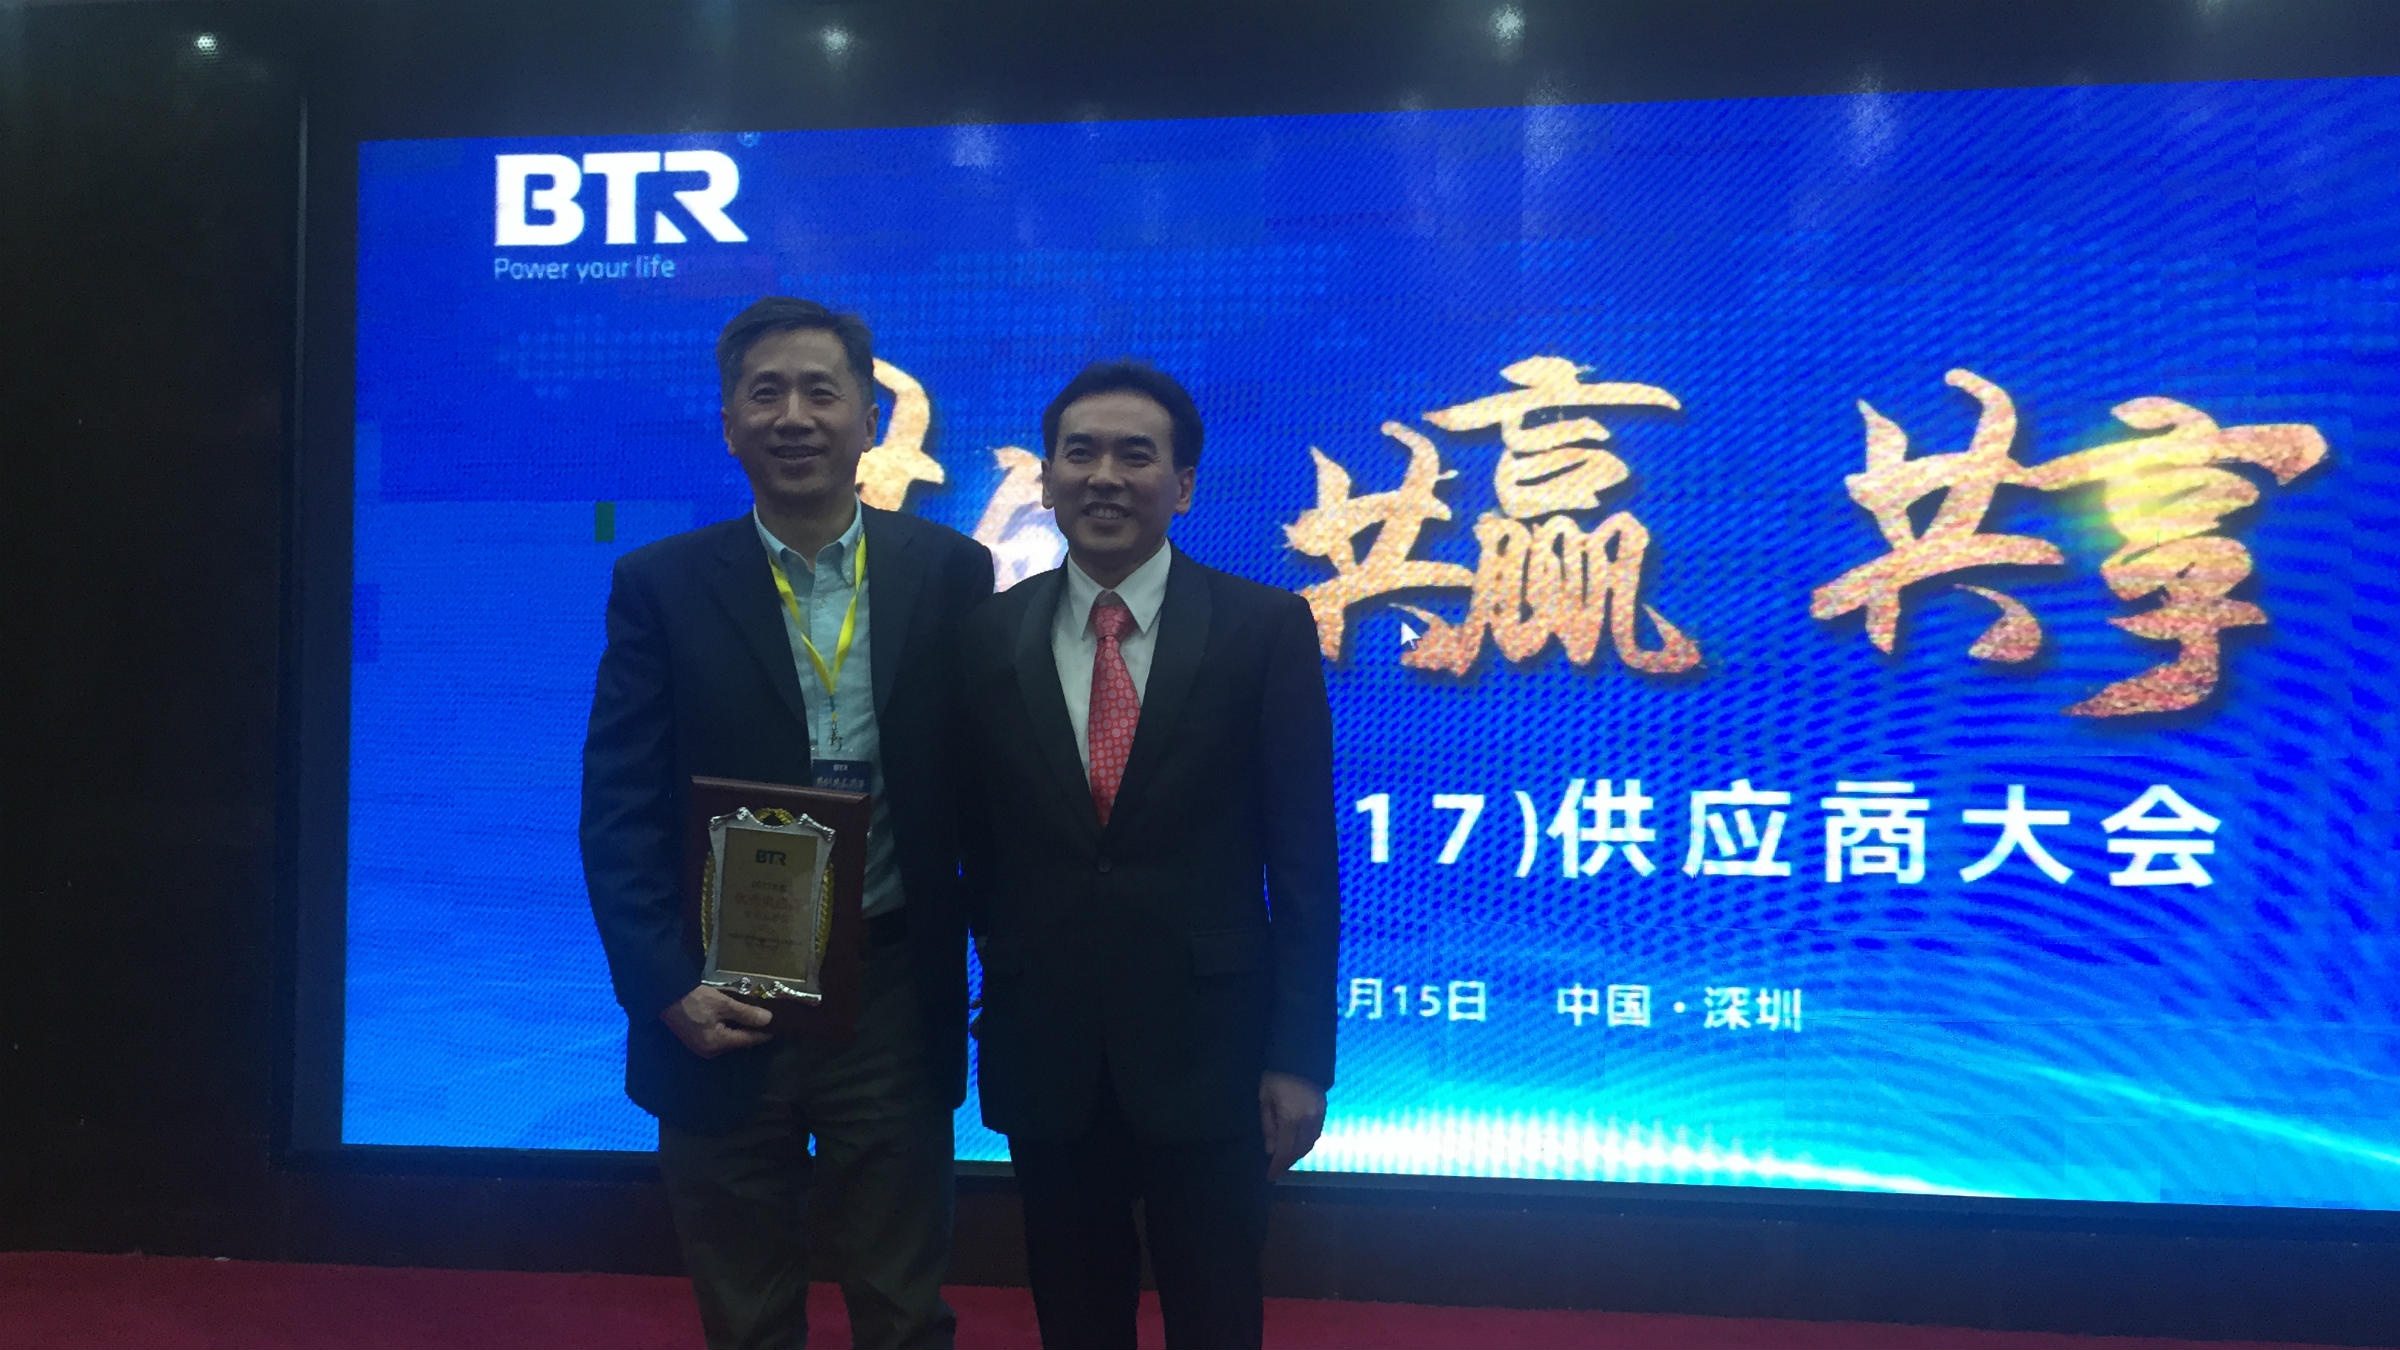 GEA receives BTR Award for Excellent Supplier